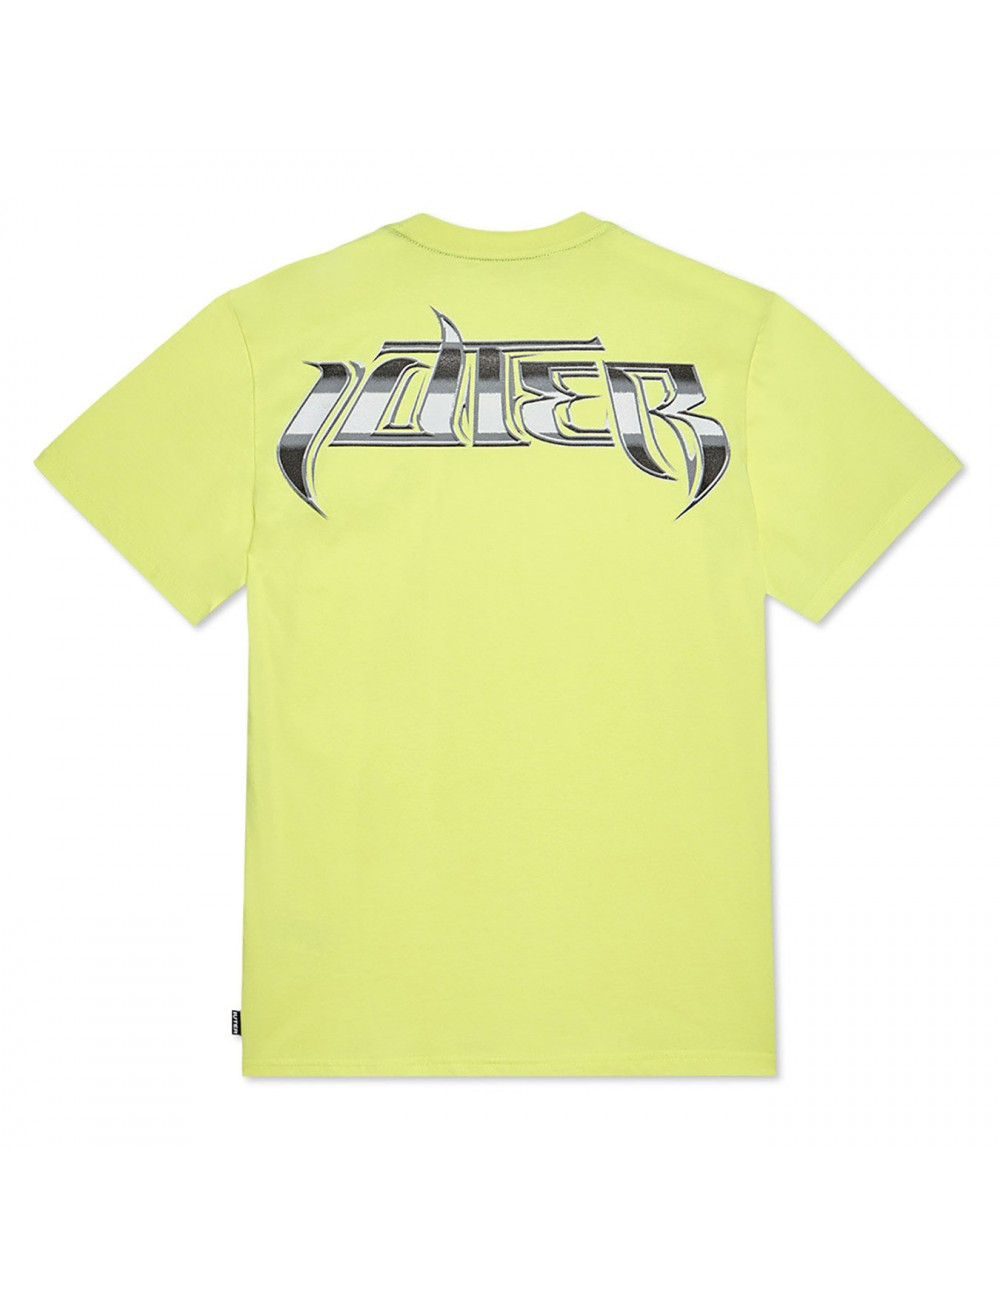 Iuter Ryders tee - 19WITS79 | Shapestore.it